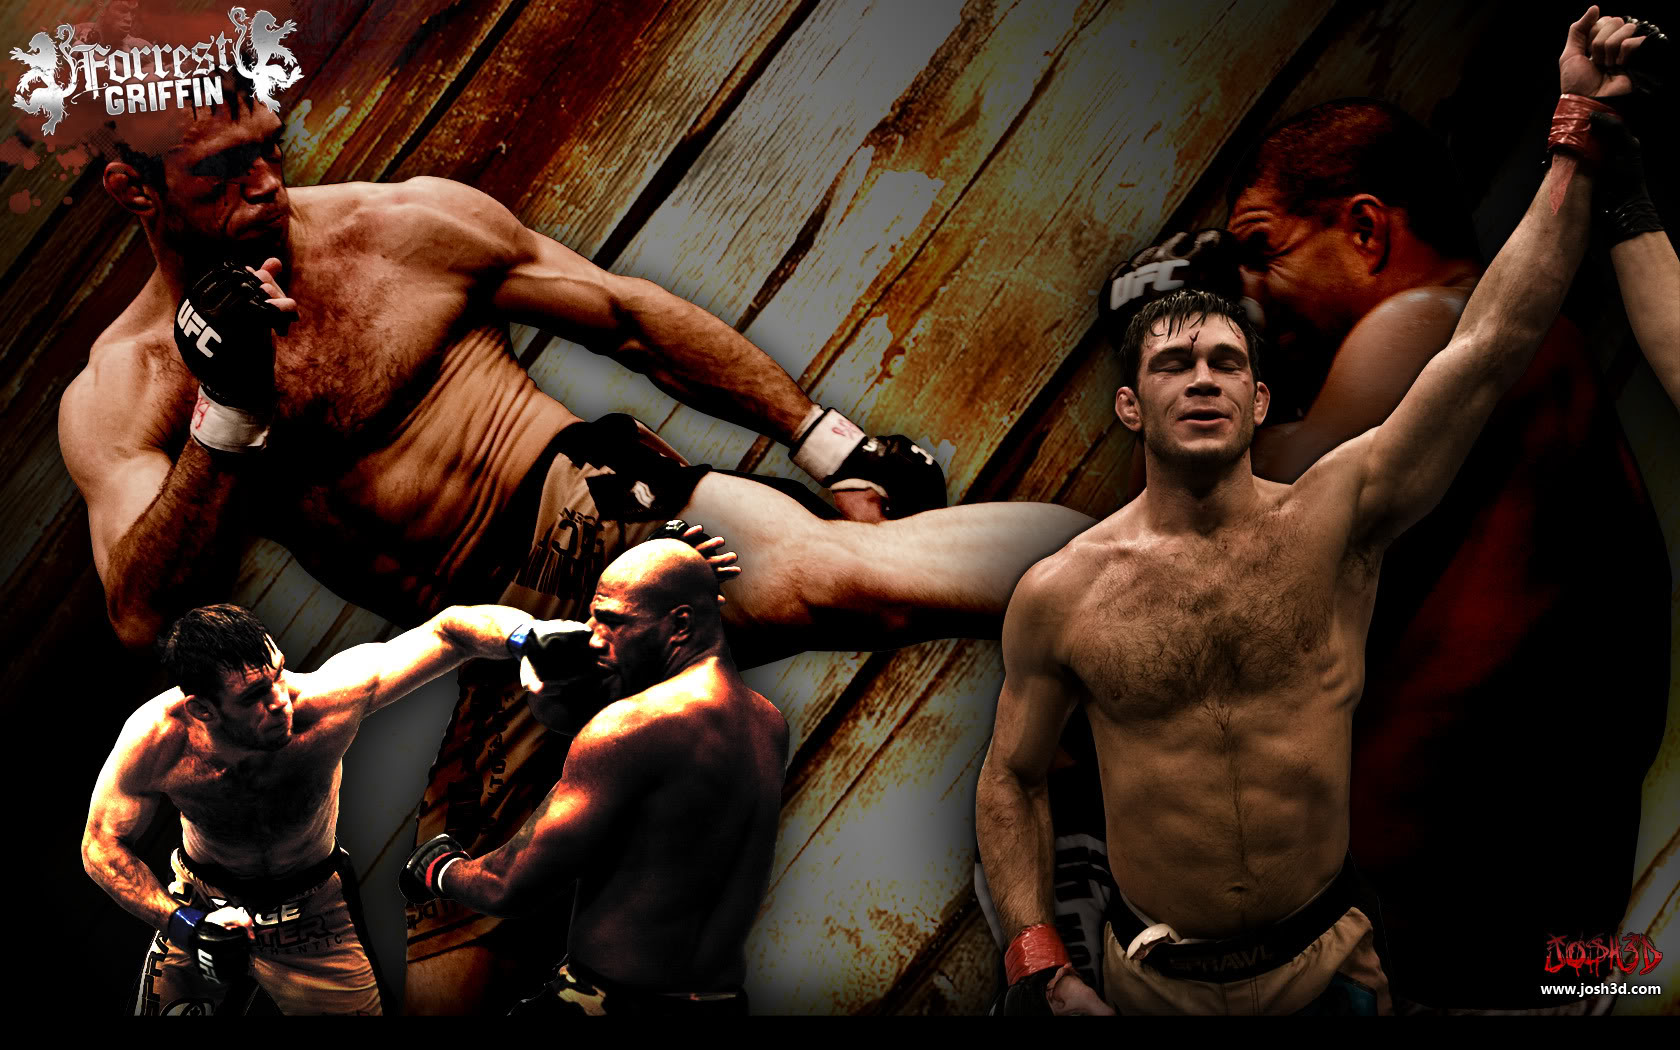 Ufc Wallpaper Widescreen 1680x1050